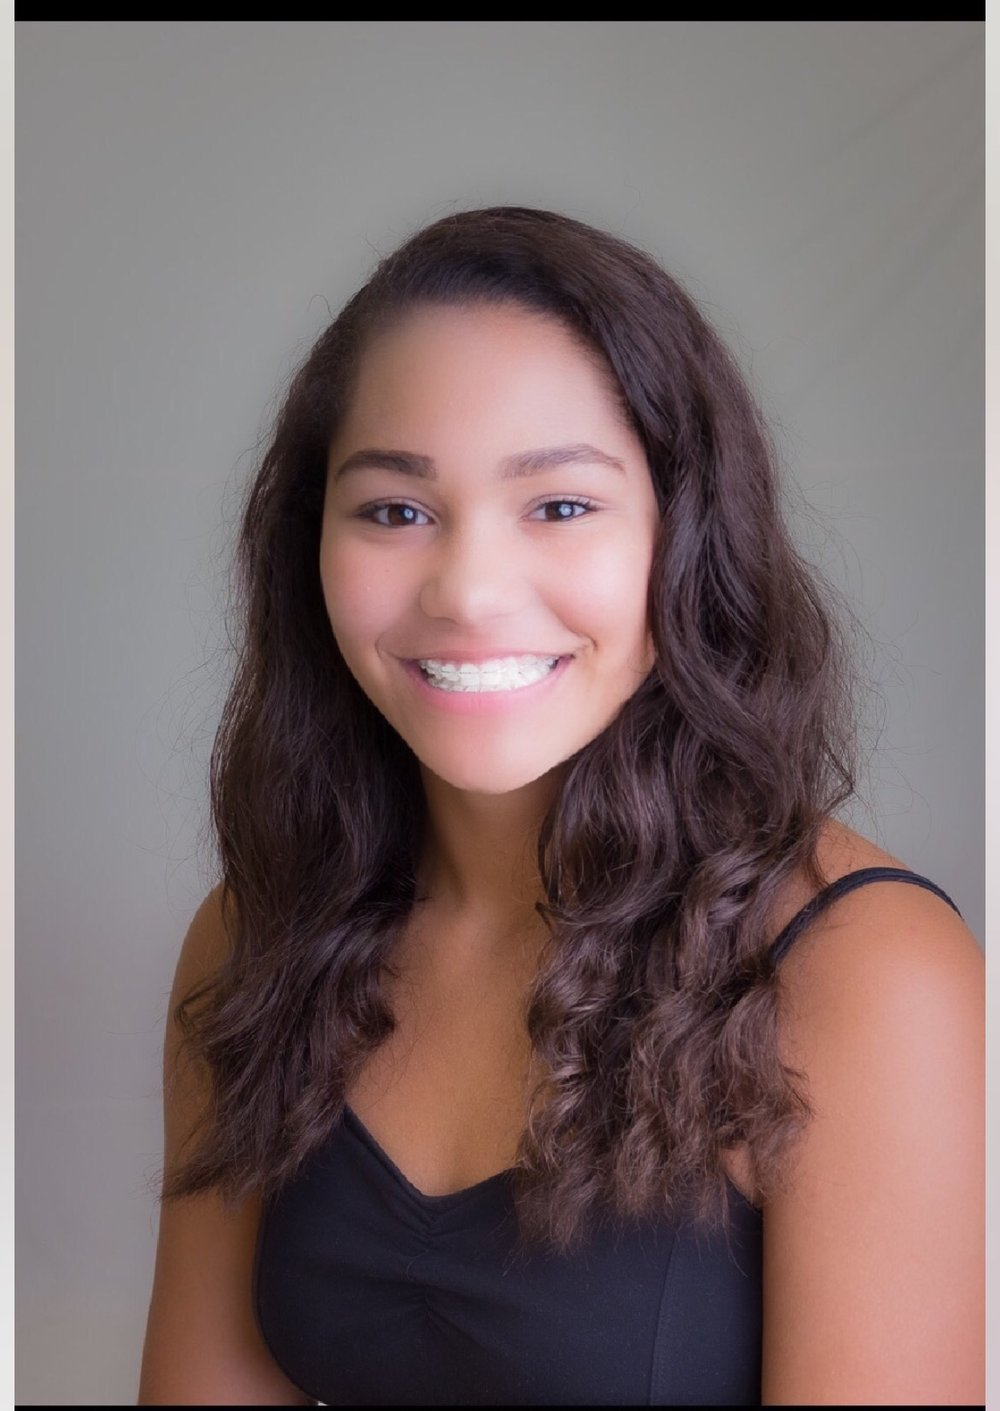 DEAYZA-MARIE PEEBLES    Finger Lakes' Outstanding Teen   Talent:   Baton   Platform:  Everlasting Memories